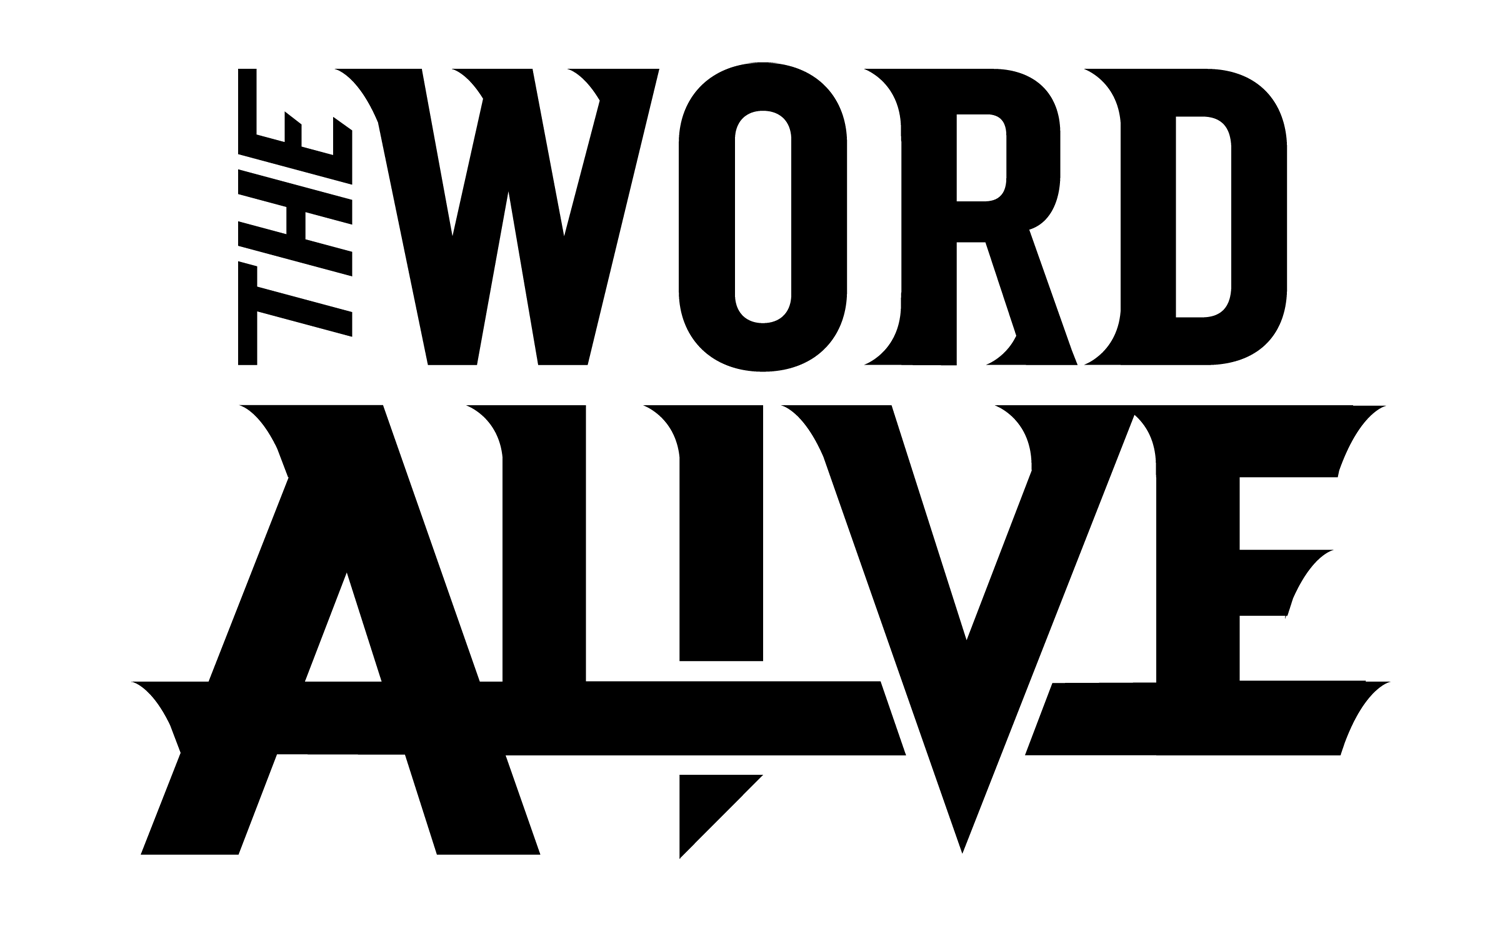 Hellyeah band logo png. The word alive interview